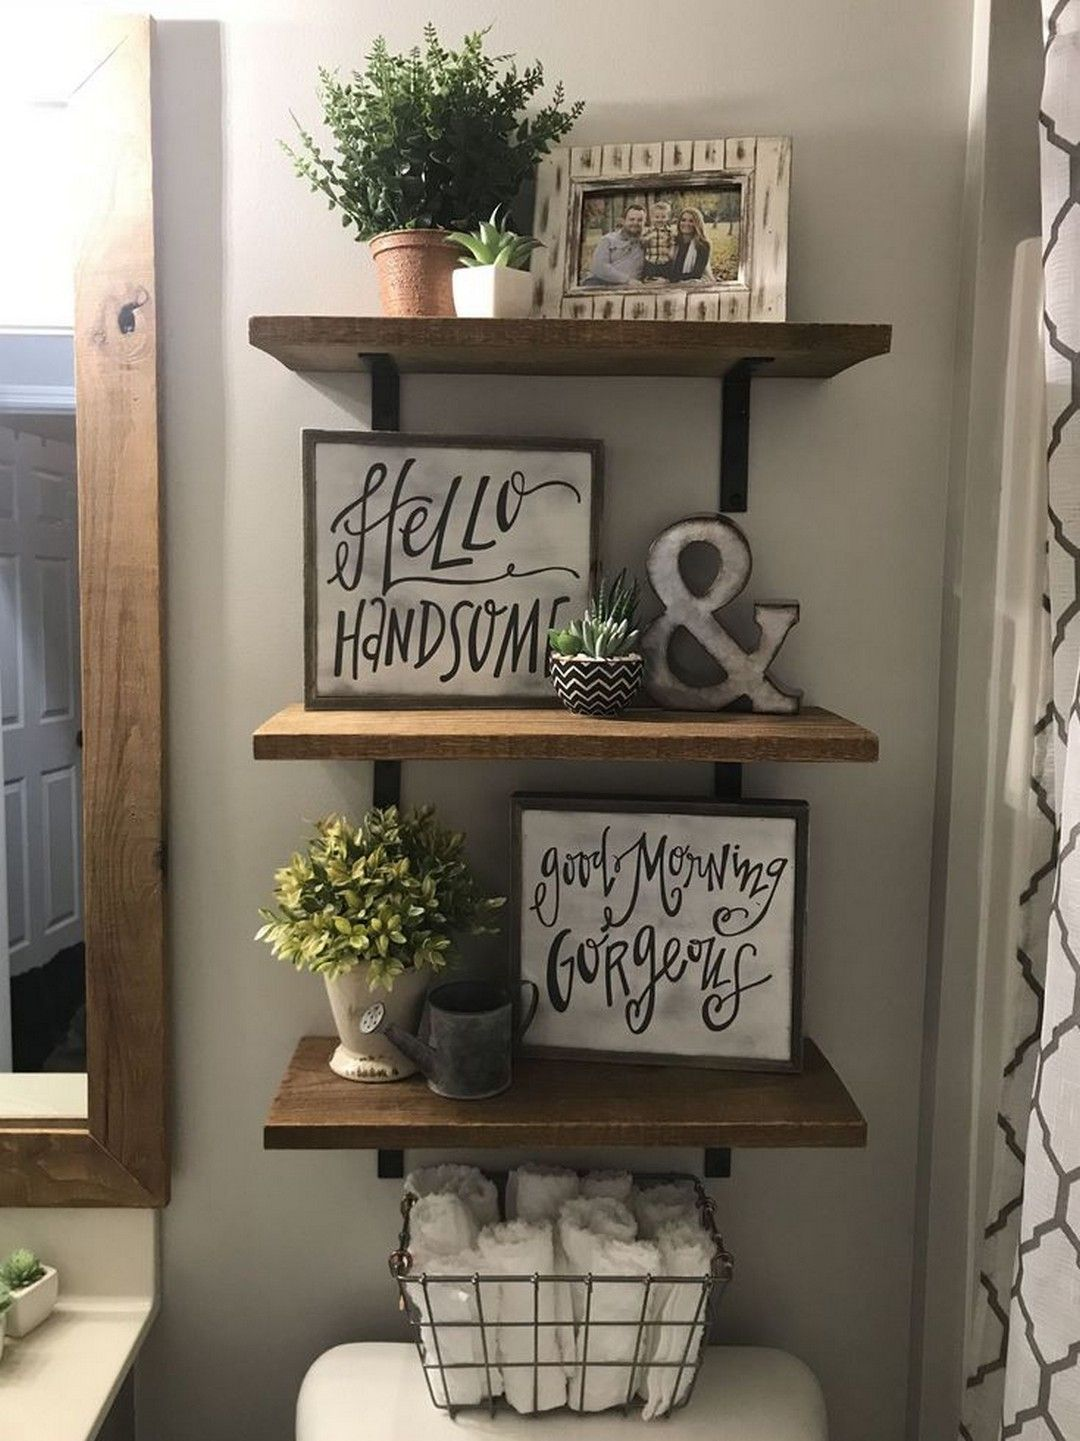 28 Beautiful Farmhouse Bathroom Design and Decor Ideas You Will Go Crazy For - House  Living #style #shopping #styles #outfit #pretty #girl #girls #beauty #beautiful #me #cute #stylish #photooftheday #swag #dress #shoes #diy #design #fashion #homedecor